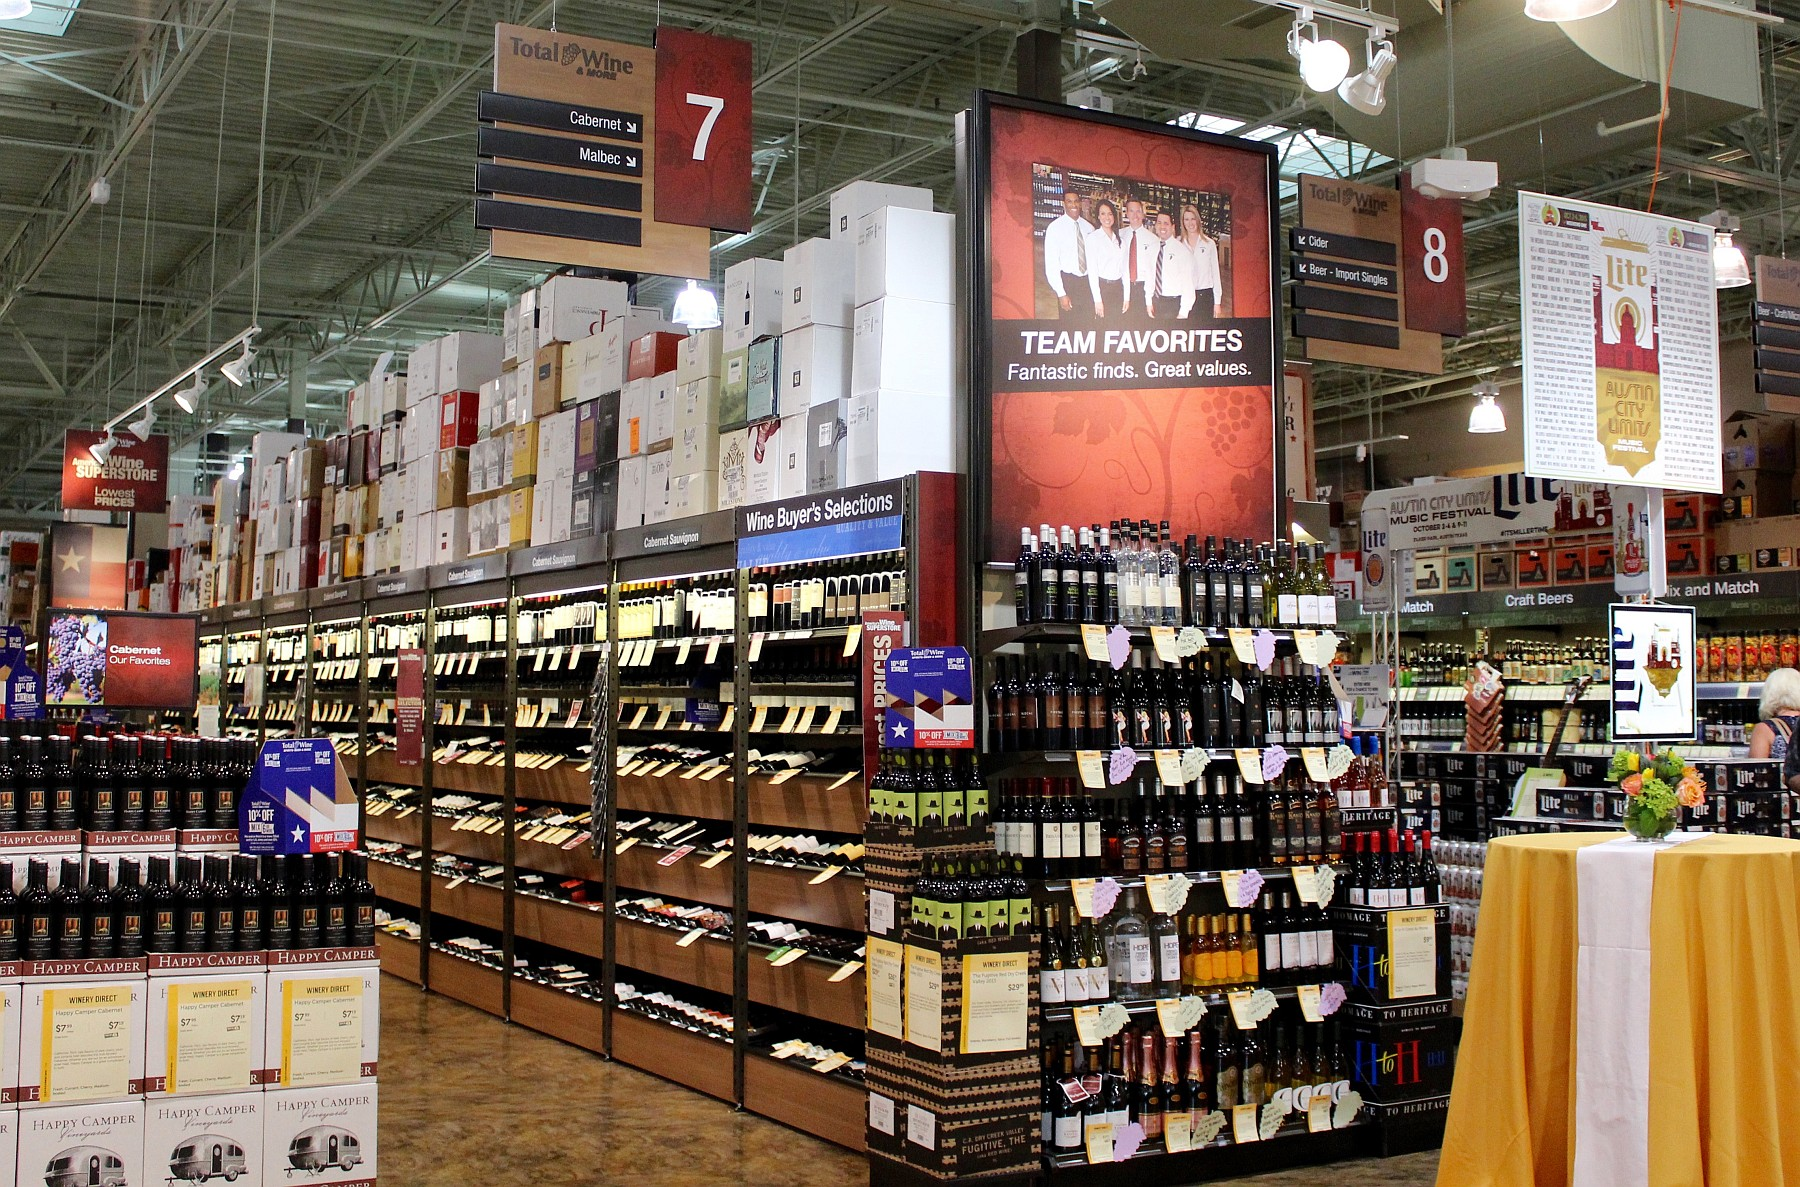 Total Wine selection